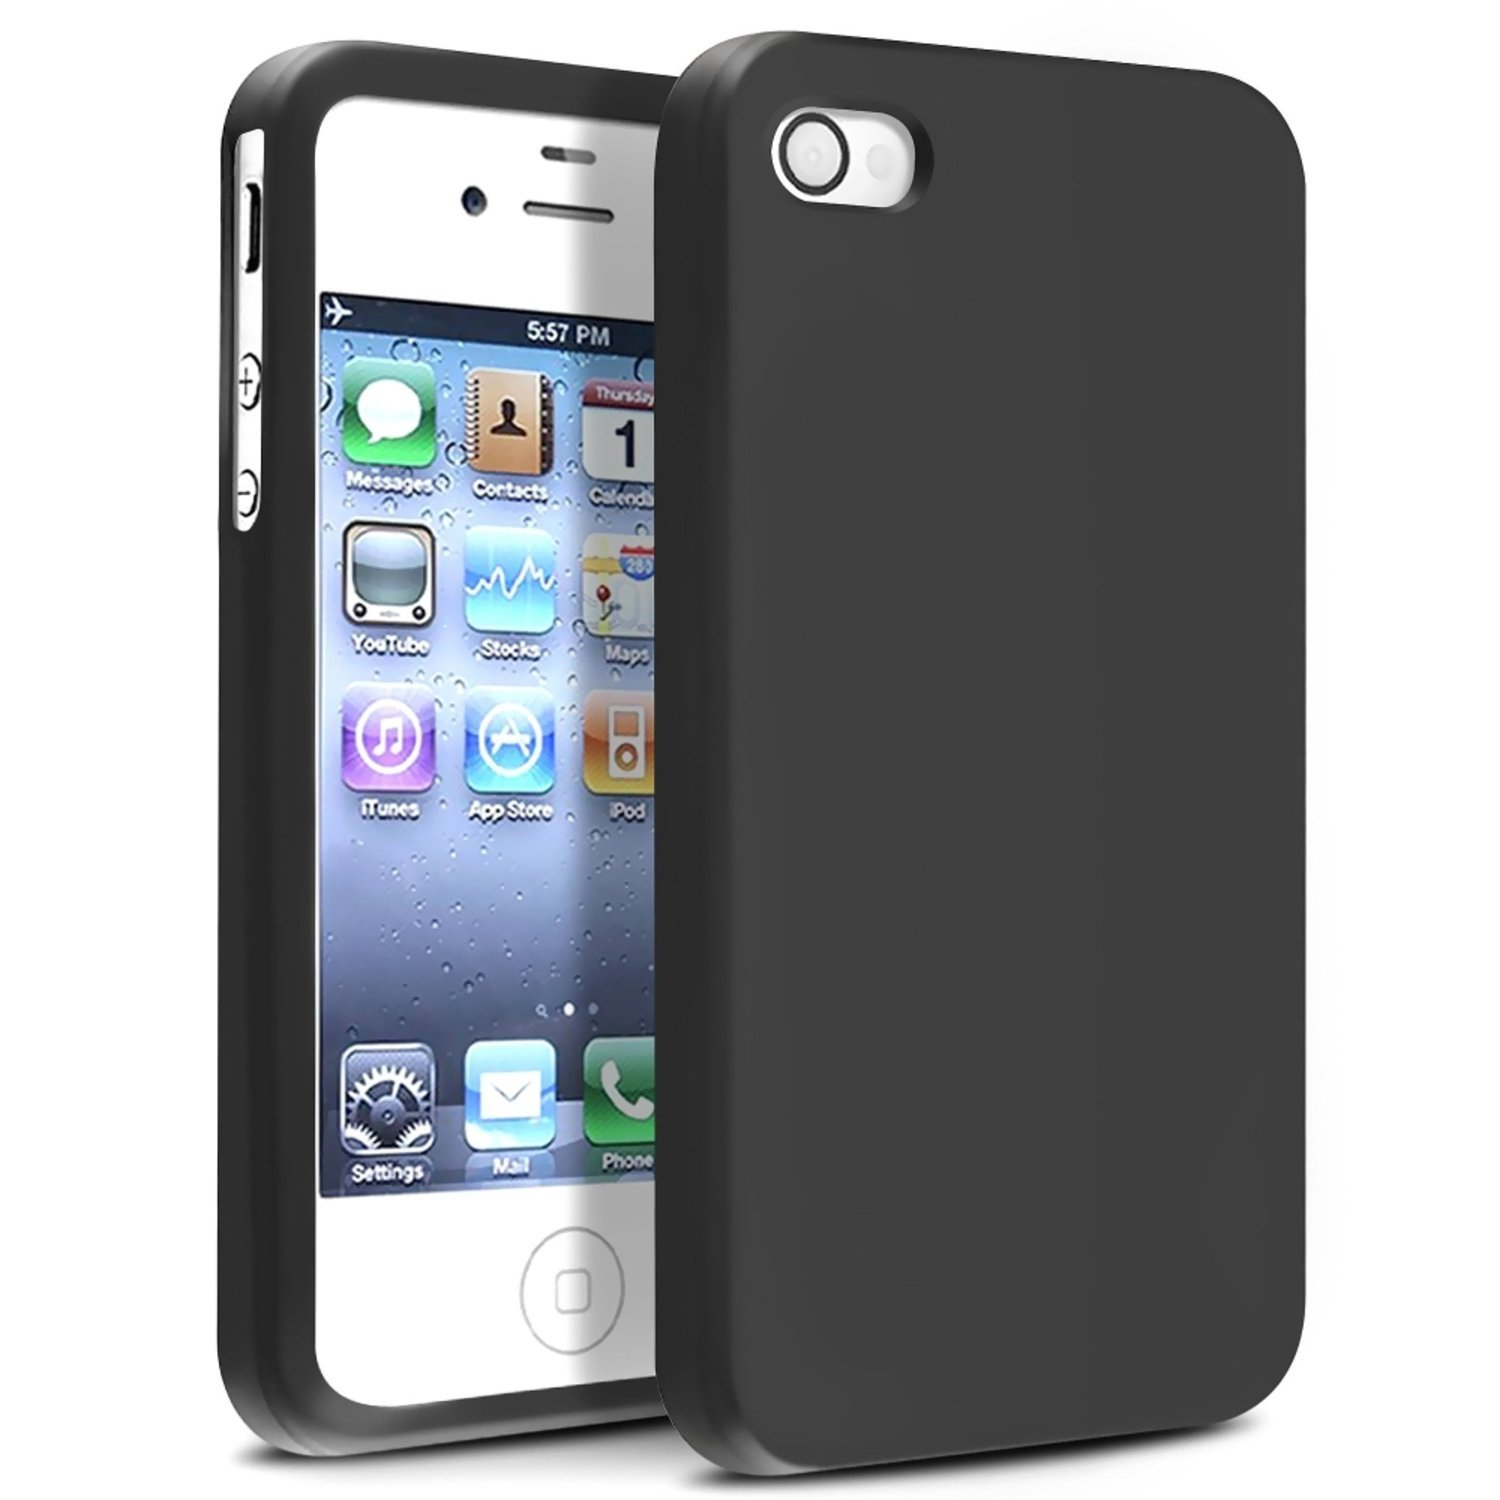 check out 33fd5 4fa90 US $2.18 25% OFF|BIBIBALL For iphone 4 4S Case Business Shockproof case For  iphone 4 Case Soft TPU Silicone Phone Protective Cover i4 black-in Phone ...